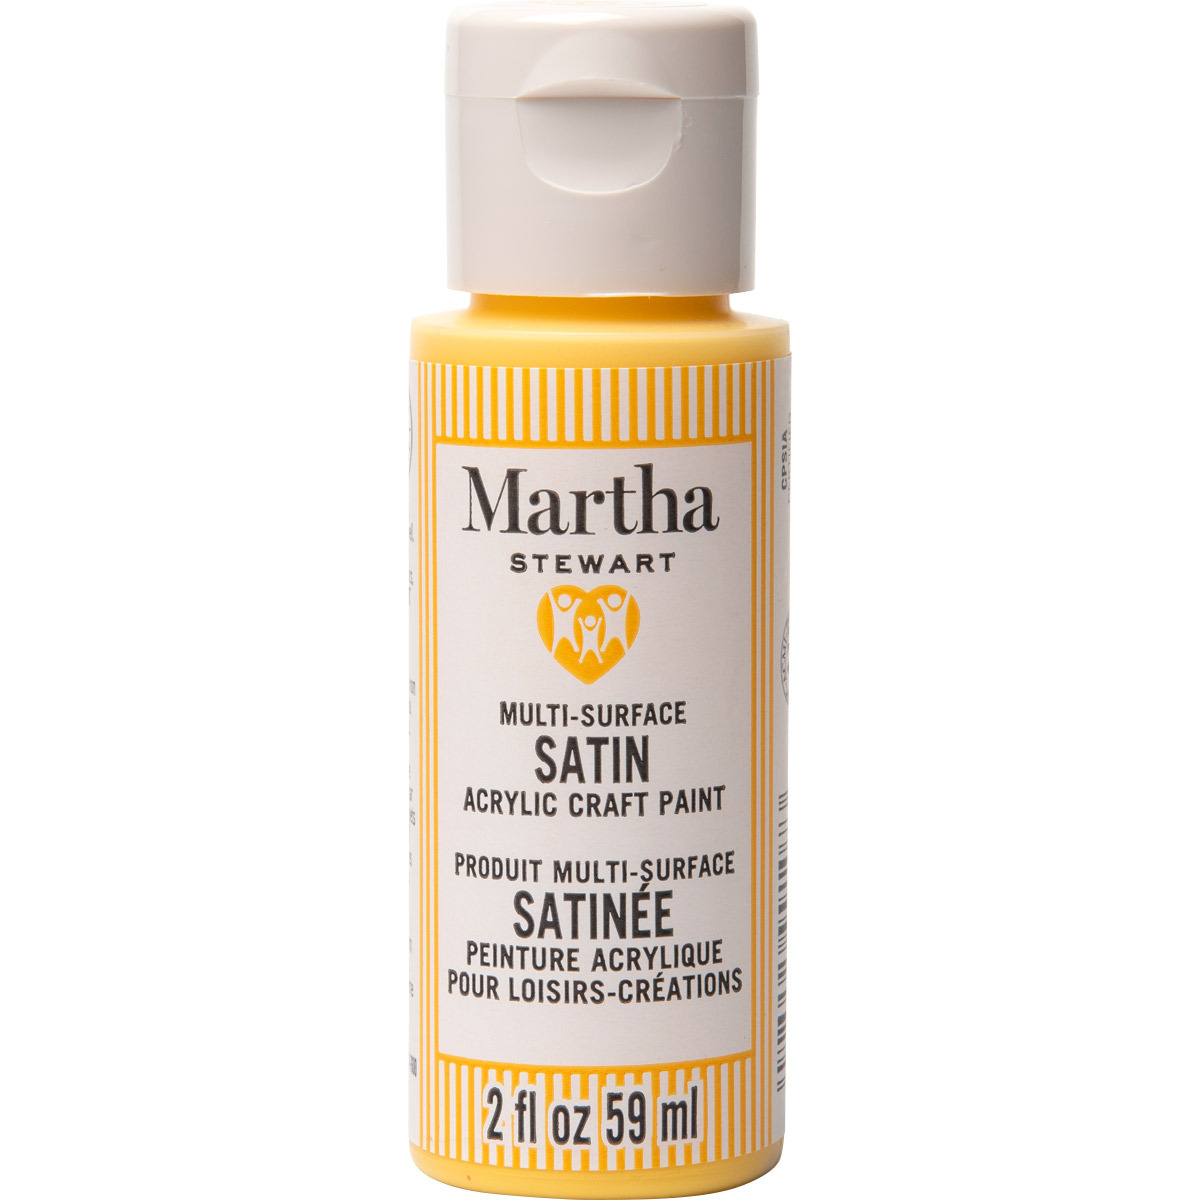 Martha Stewart ® Multi-Surface Satin Acrylic Craft Paint CPSIA - Marigold, 2 oz. - 99107